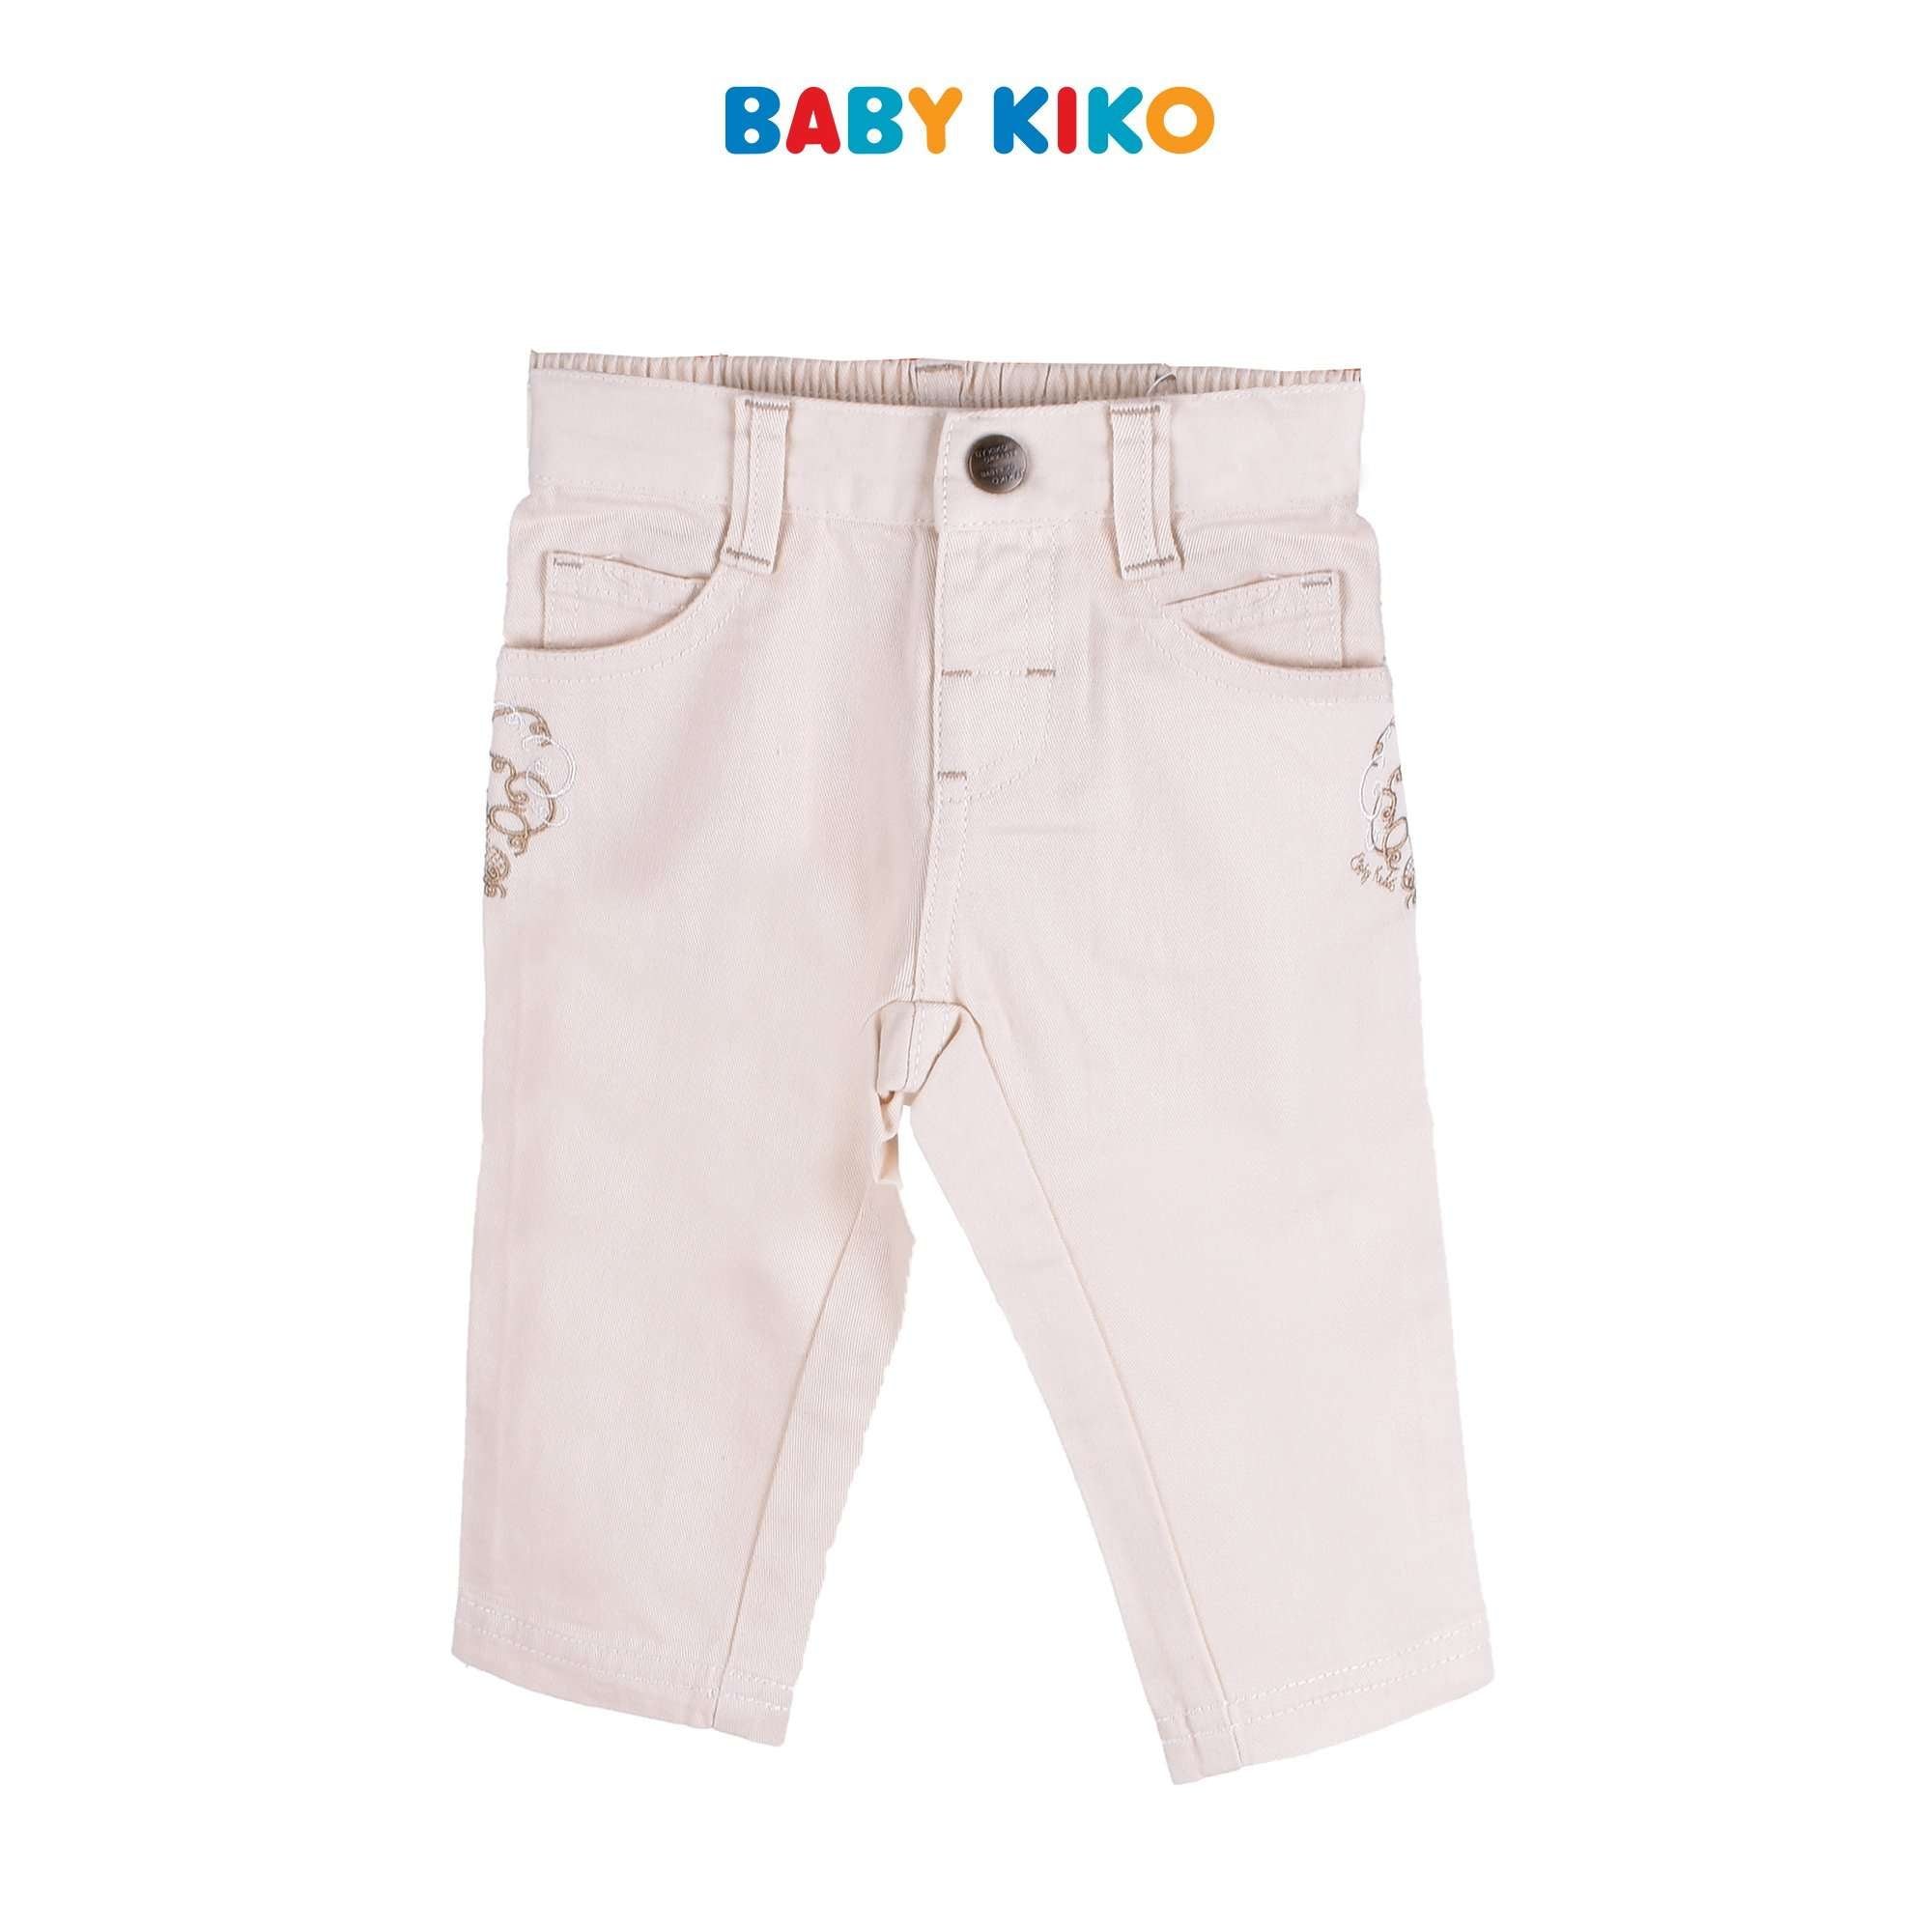 Baby KIKO Baby Girl Long Pants Woven - Khaki 330060-251 : Buy Baby KIKO online at CMG.MY